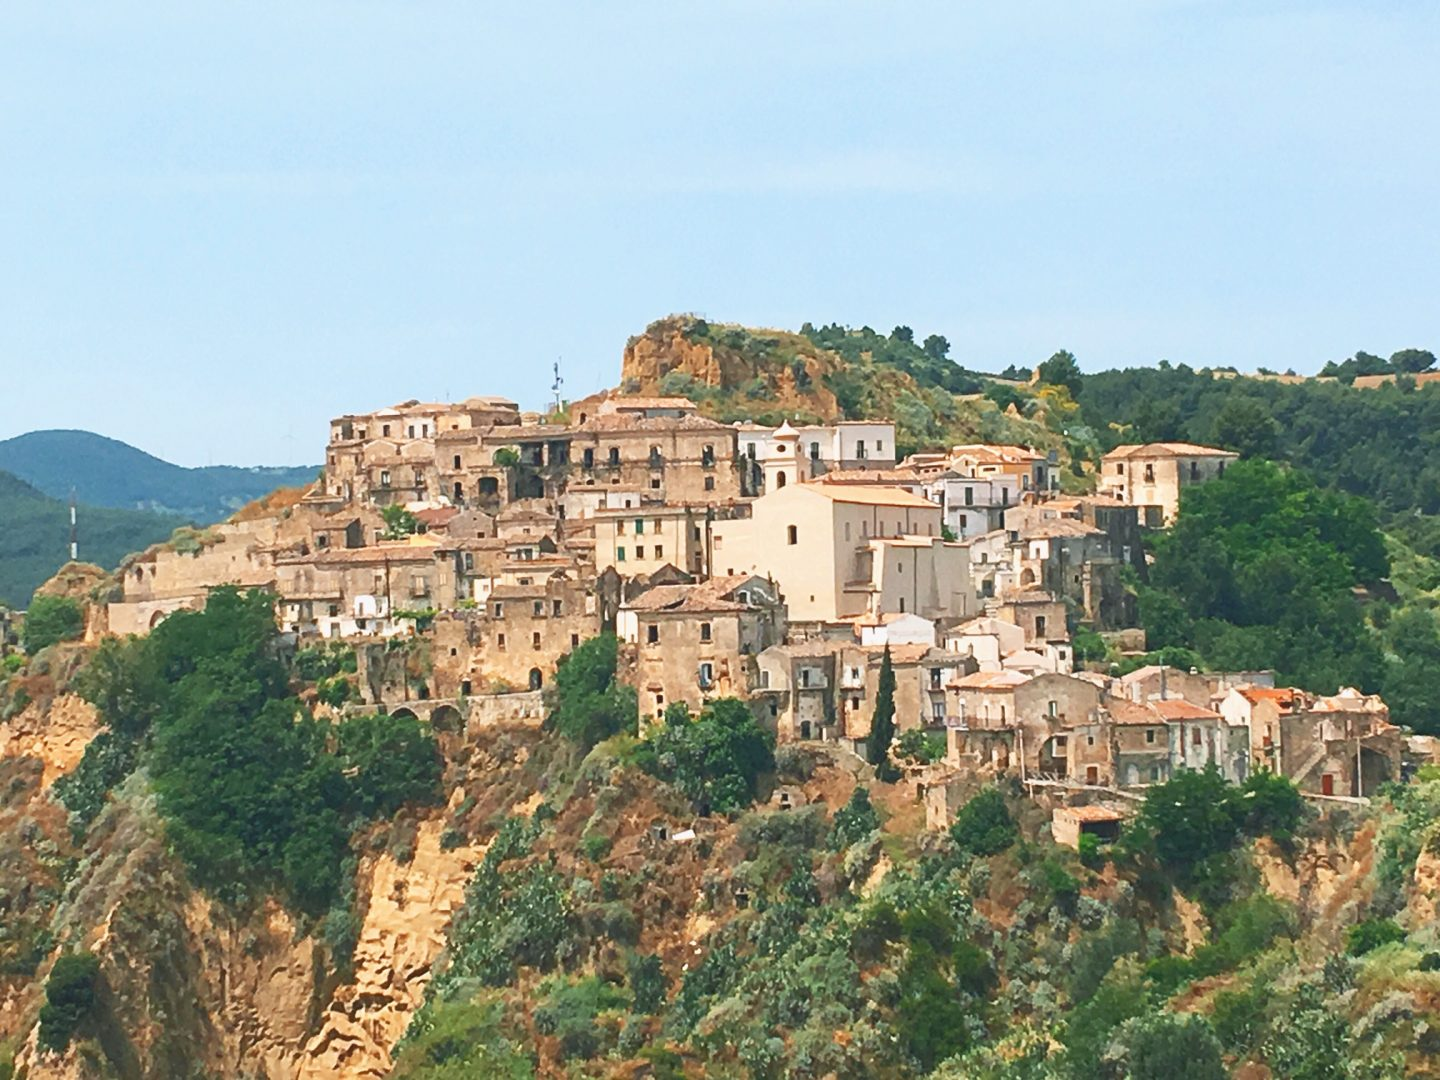 The town of La Rabatana in Trsi, Basilicata, southern Italy